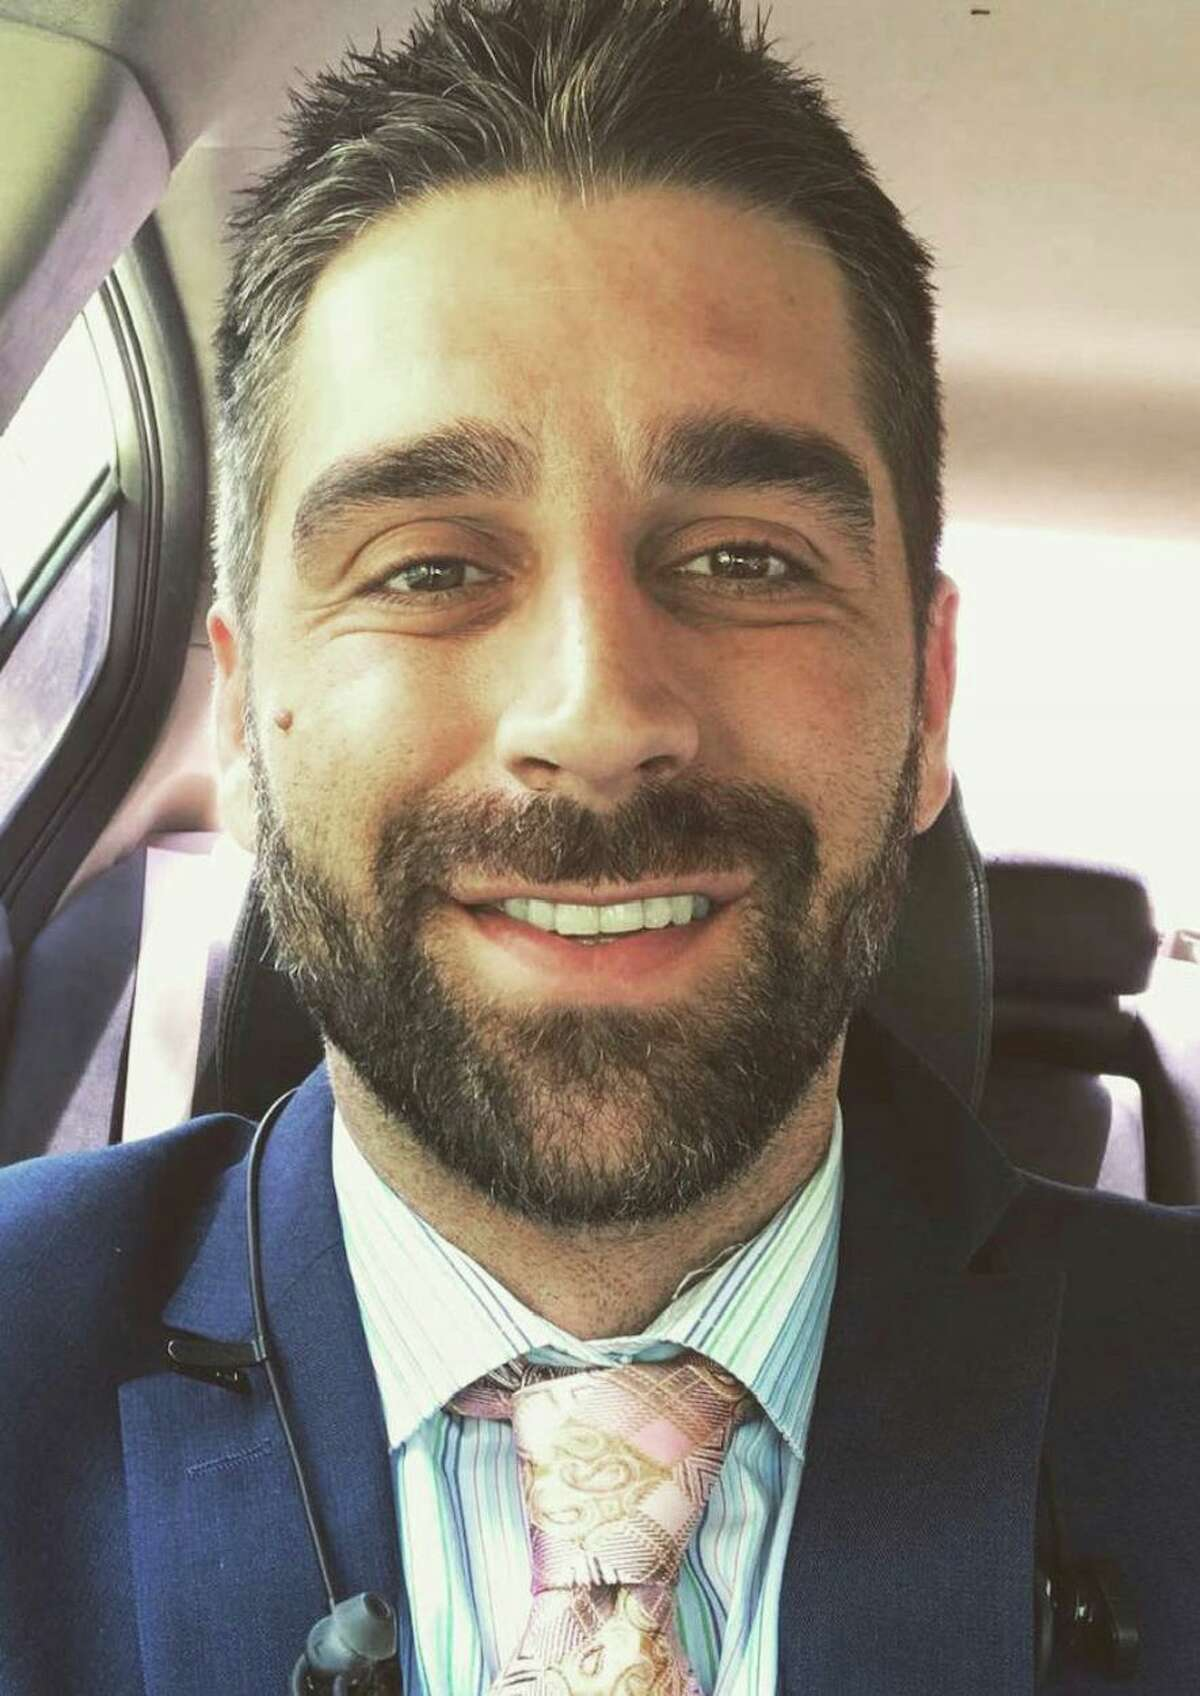 This is Matthew Carl Mazzocco, 37, of San Antonio. He was arrested in connection with the insurrection at the U.S. Capitol on Jan. 6, 2021.